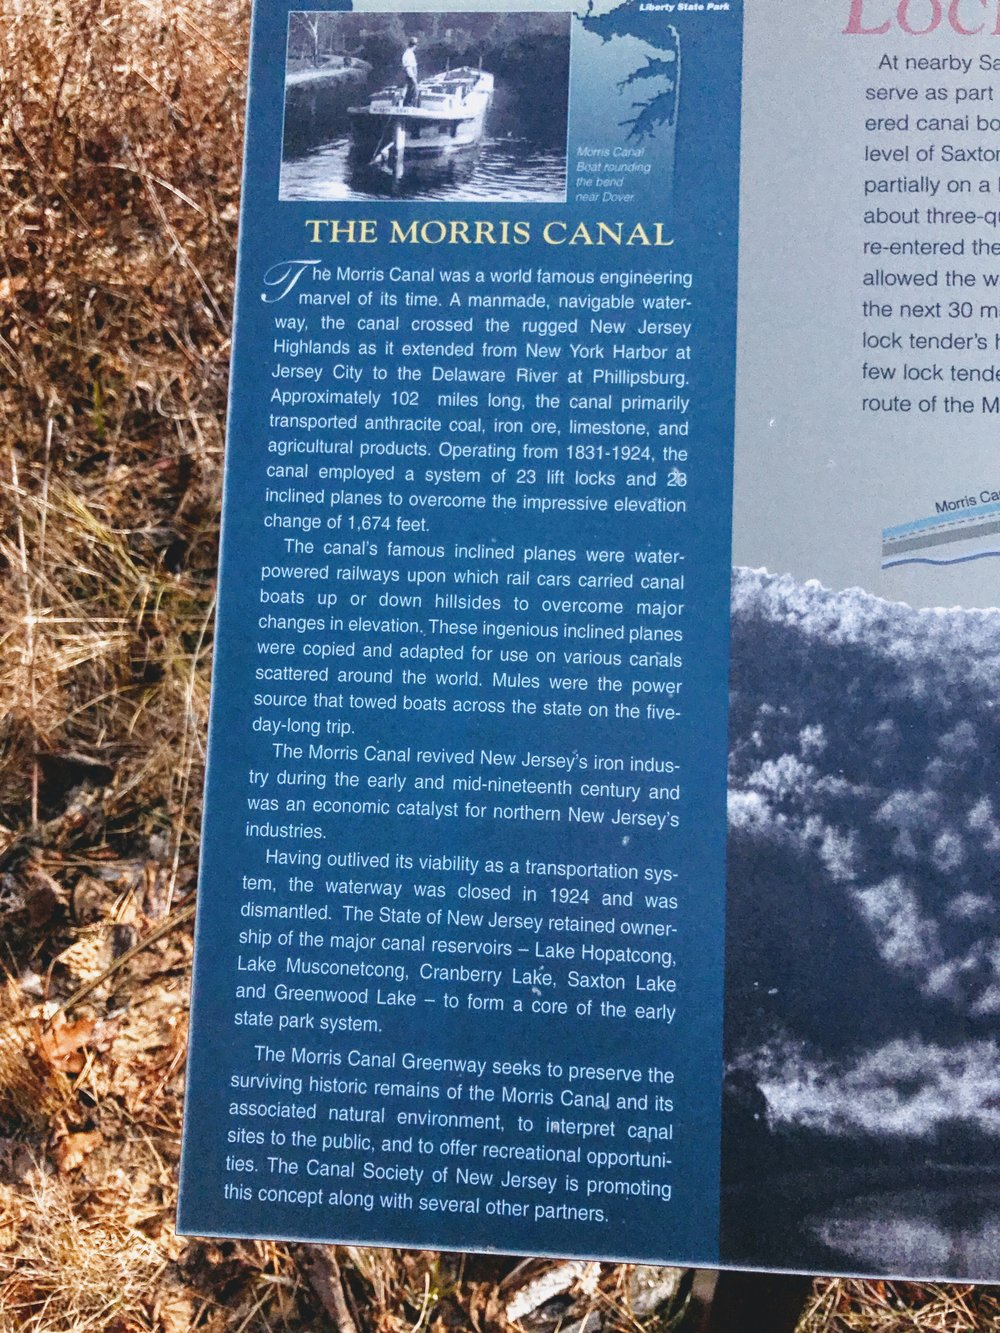 More on the Morris Canal. Don't be ignorant. Read it. Someday there will be a plaque about the great Central Park that once served the people of New York City, back when human beings enjoyed recreation and relaxation in places called parks. You will want a robot to read that plaque about you.